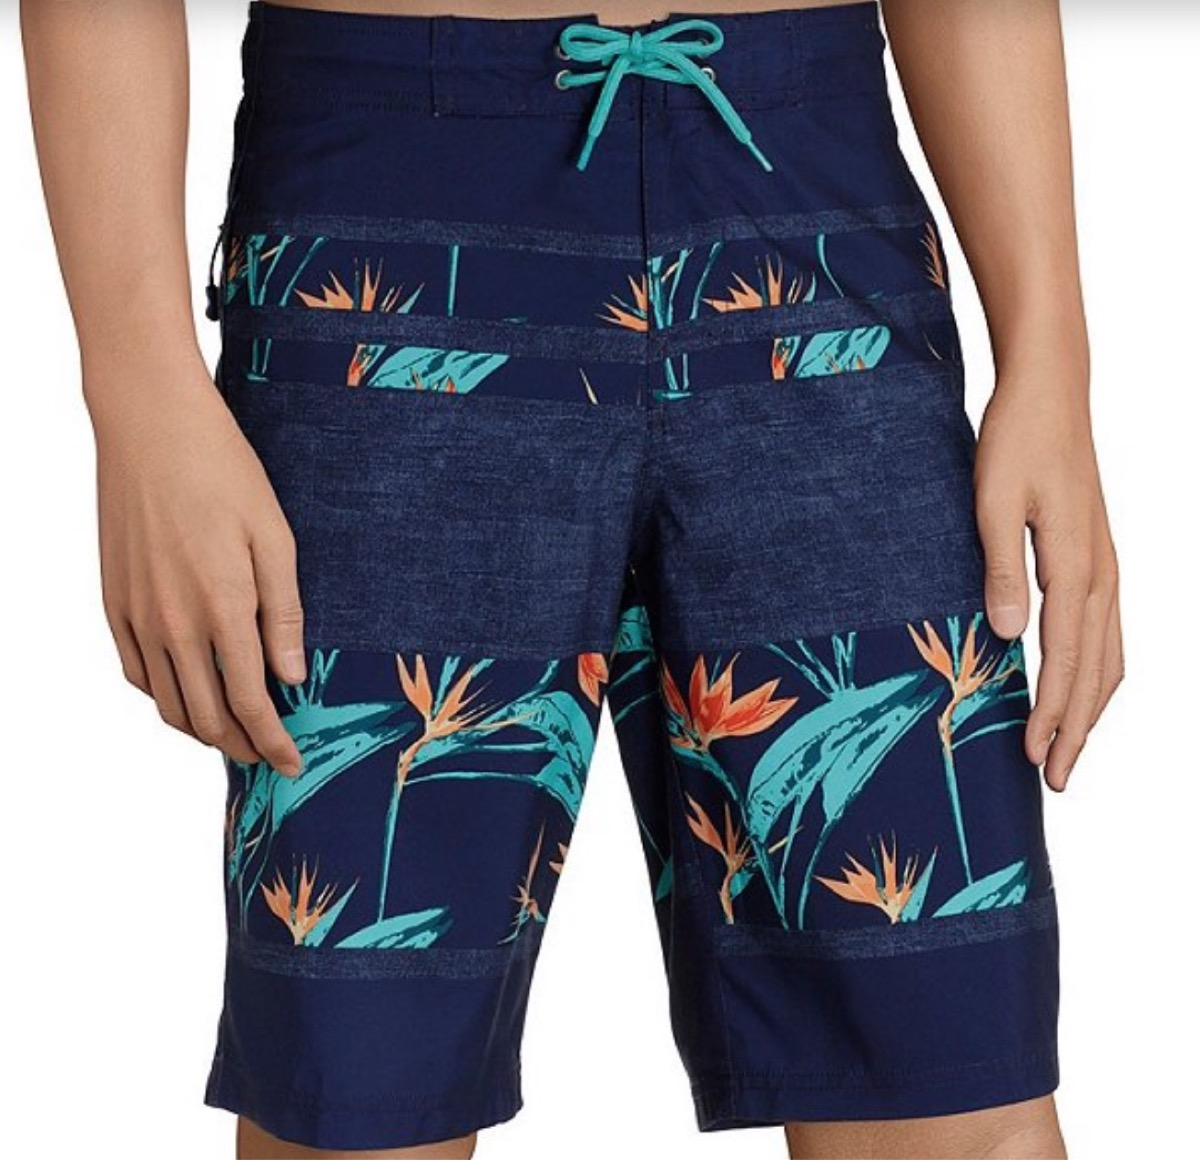 floral board shorts, cheap swimsuits